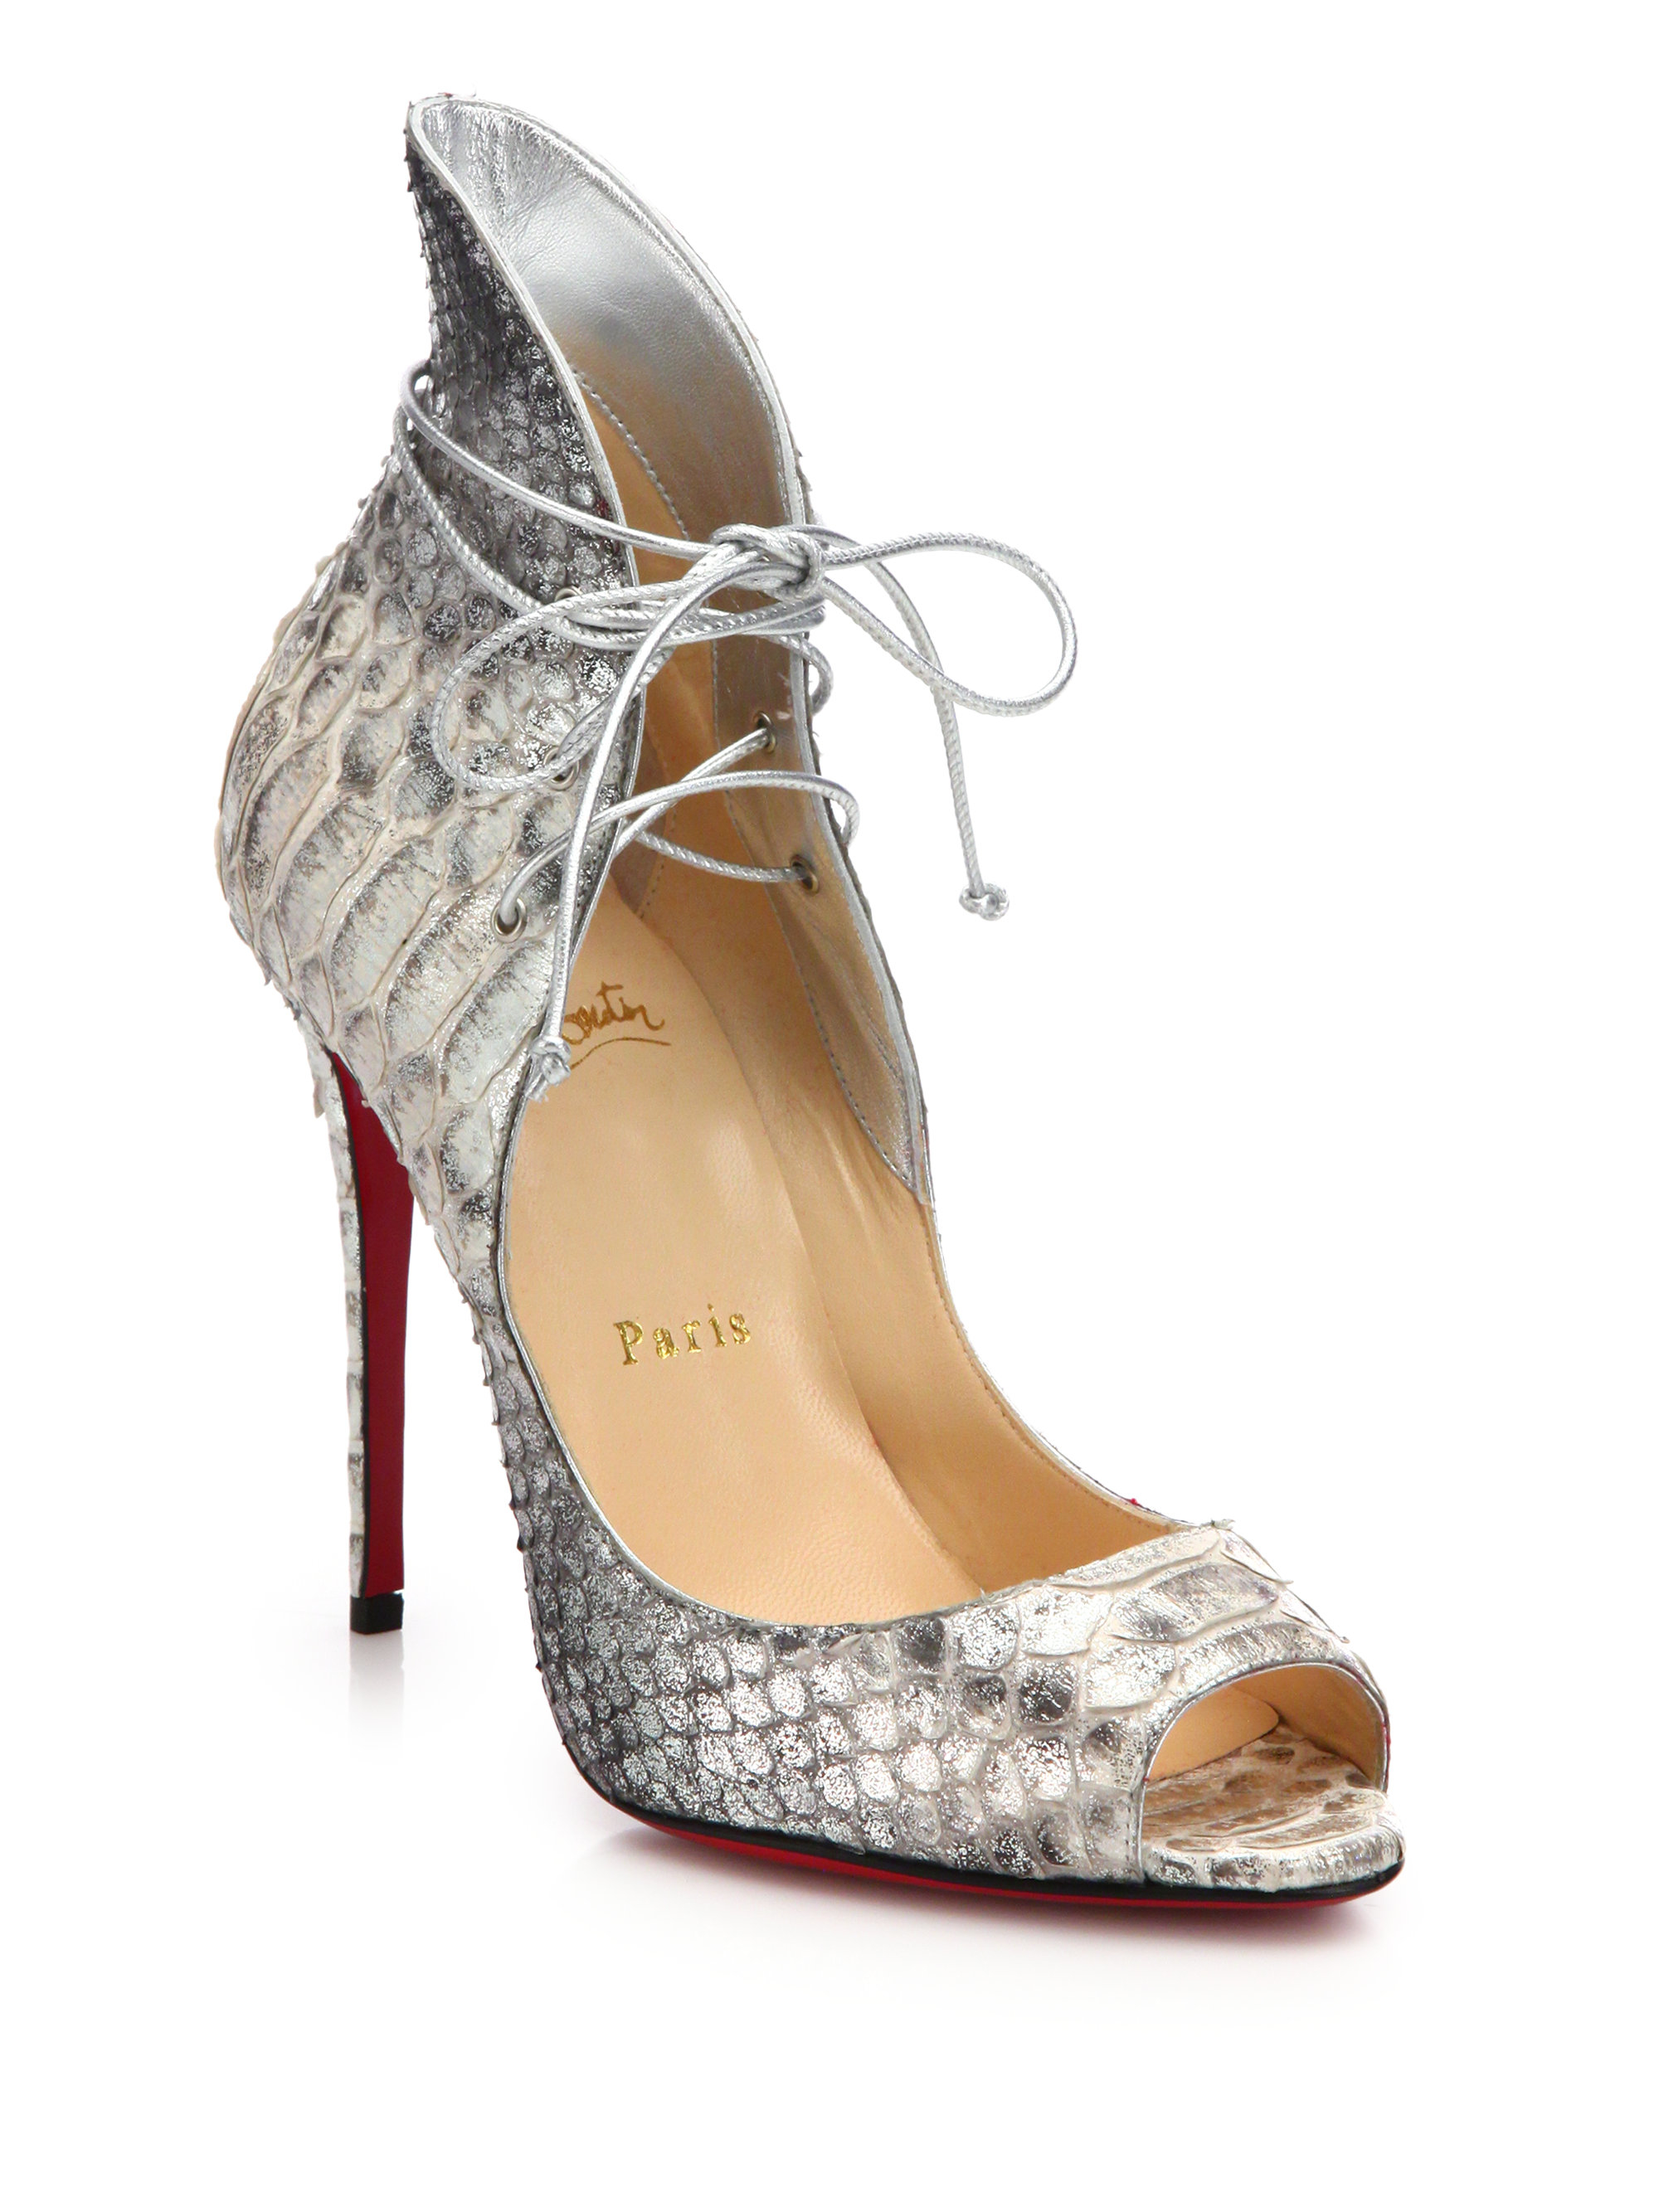 Lyst - Christian Louboutin Megavamp Python-Embossed Leather Pumps in ... d17aac1db